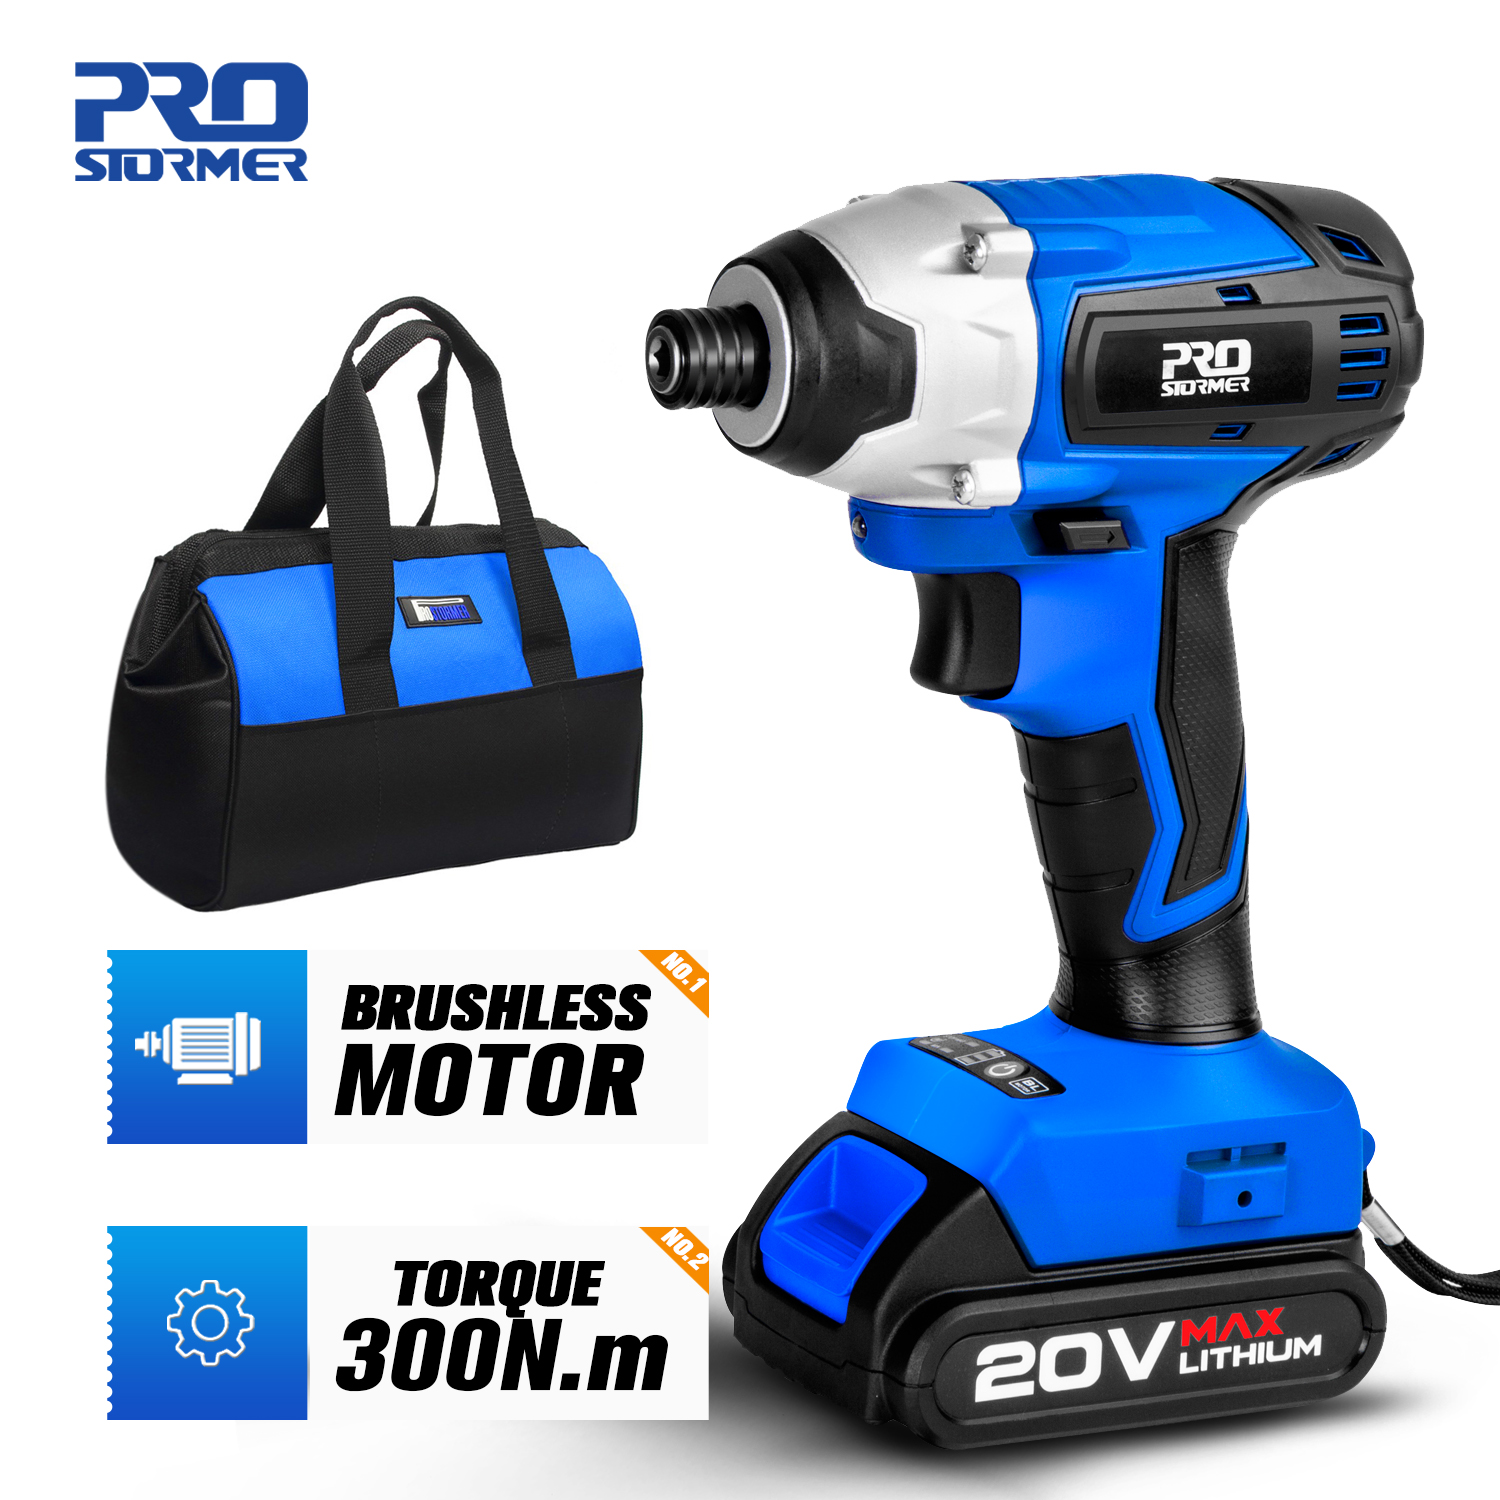 300Nm Electric Screwdriver Cordless Drill Brushless Motor Impact Driver Combo Kit 34pcs Drill Bits 20V Power Tool by PROSTORMER(China)